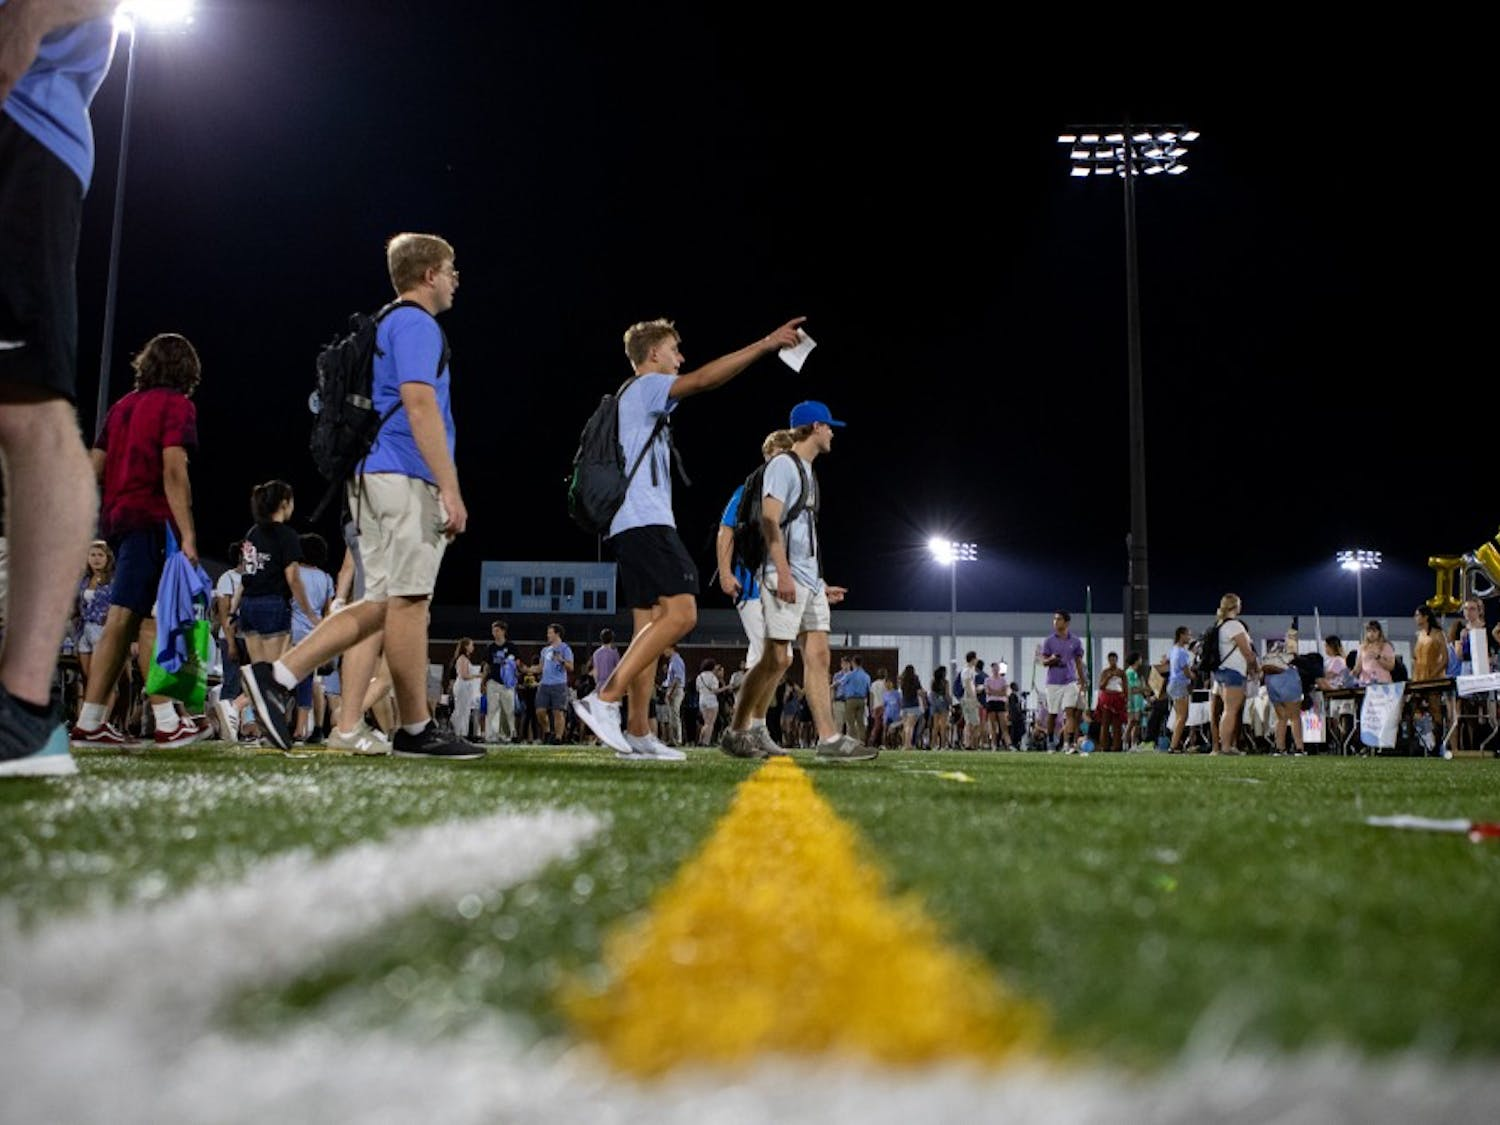 Thousands of UNC students gathered for Fallfest on Hooker Fields on the evening of Sunday, August 18 2019.